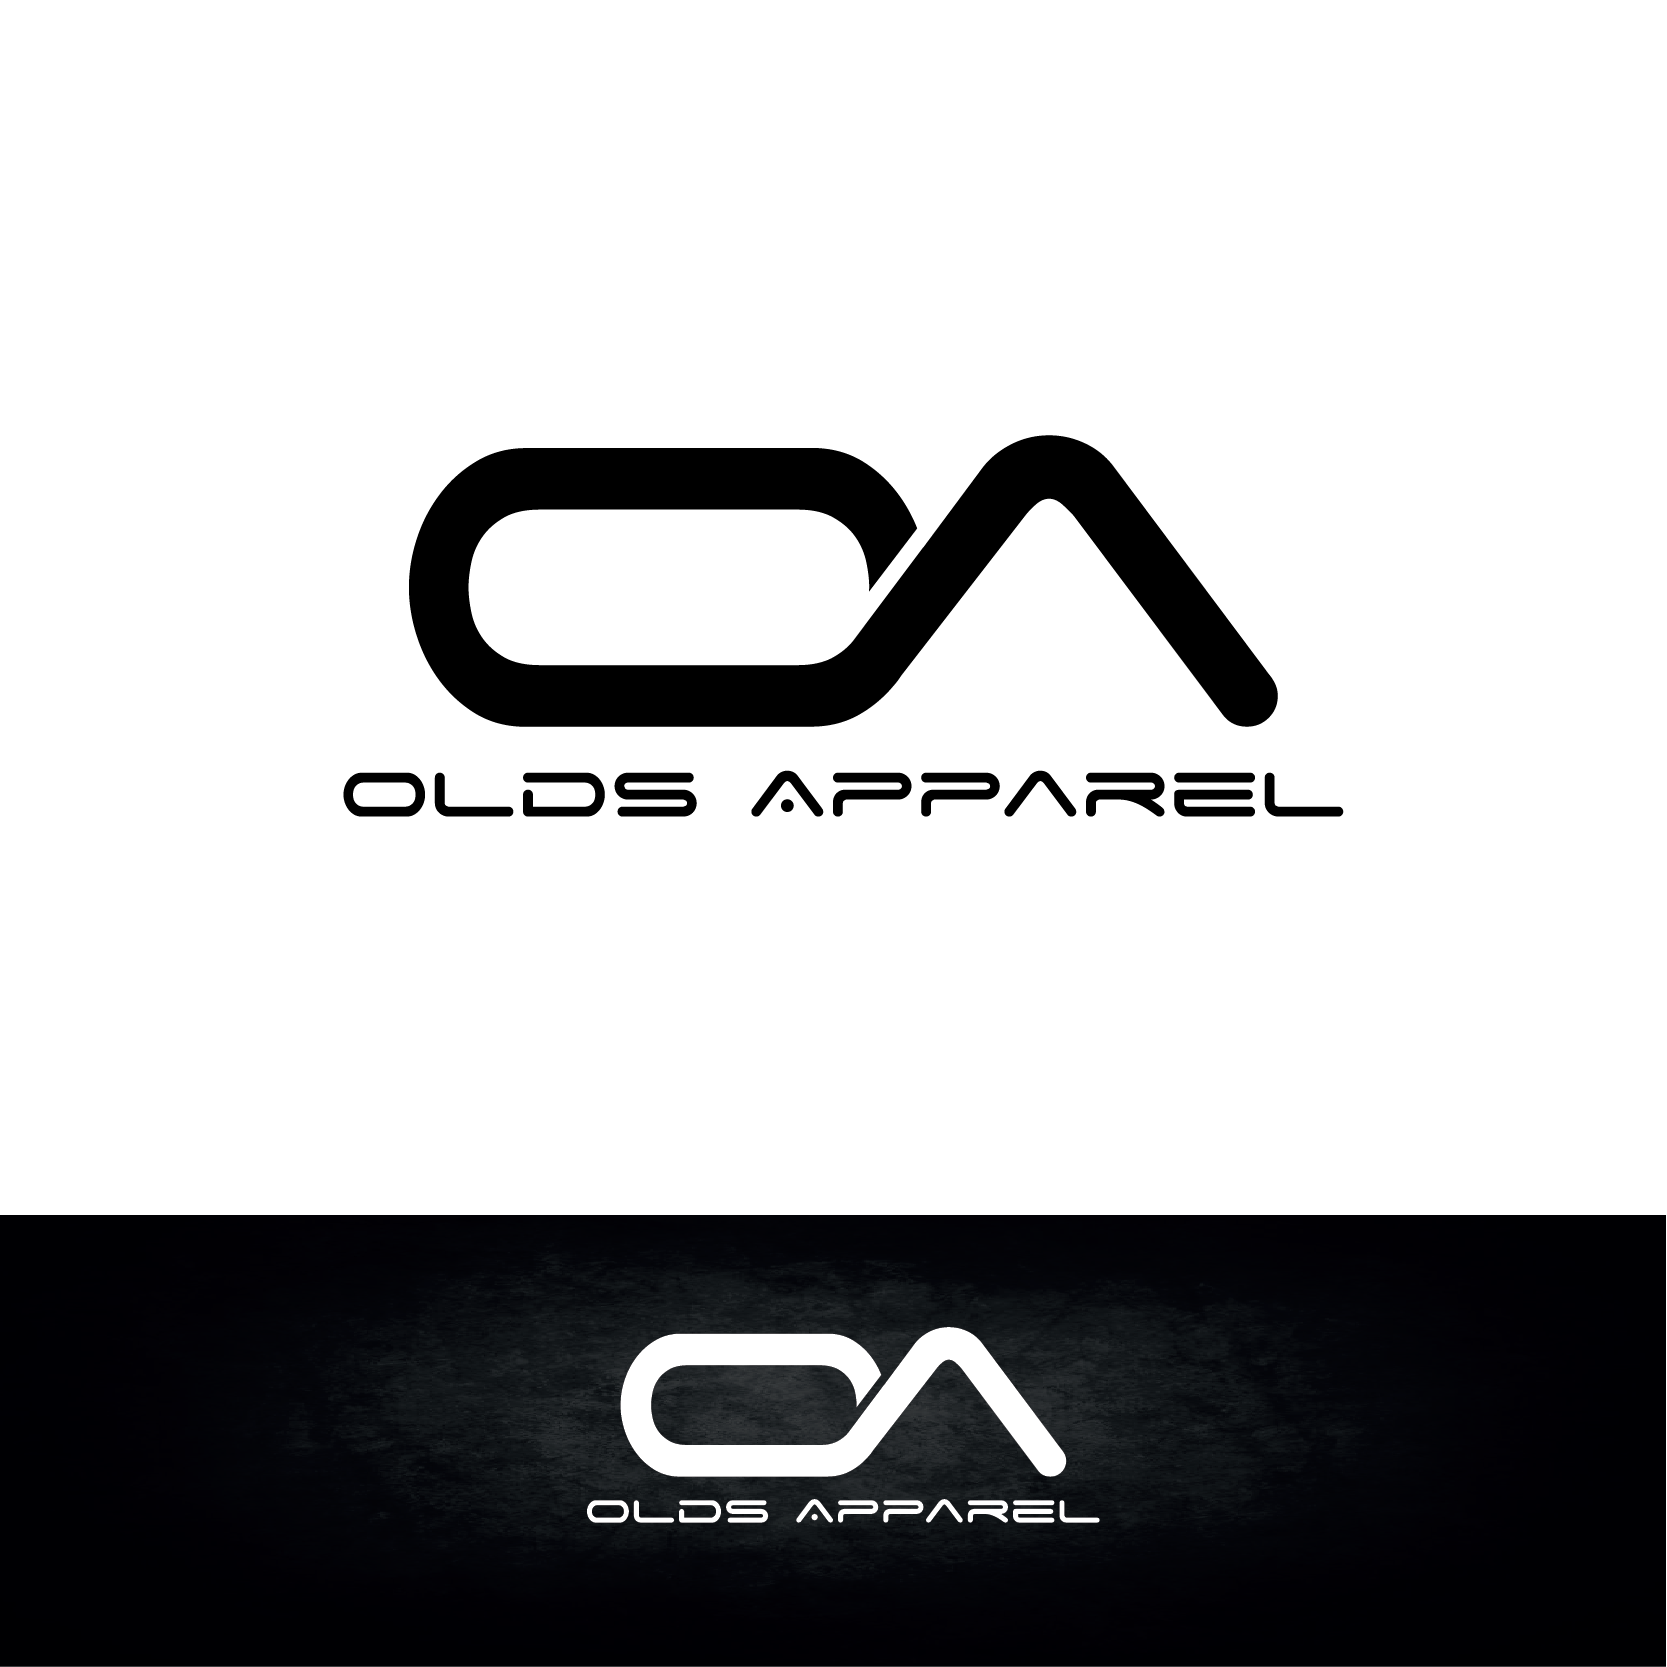 Create the next logo for Olds Apparel